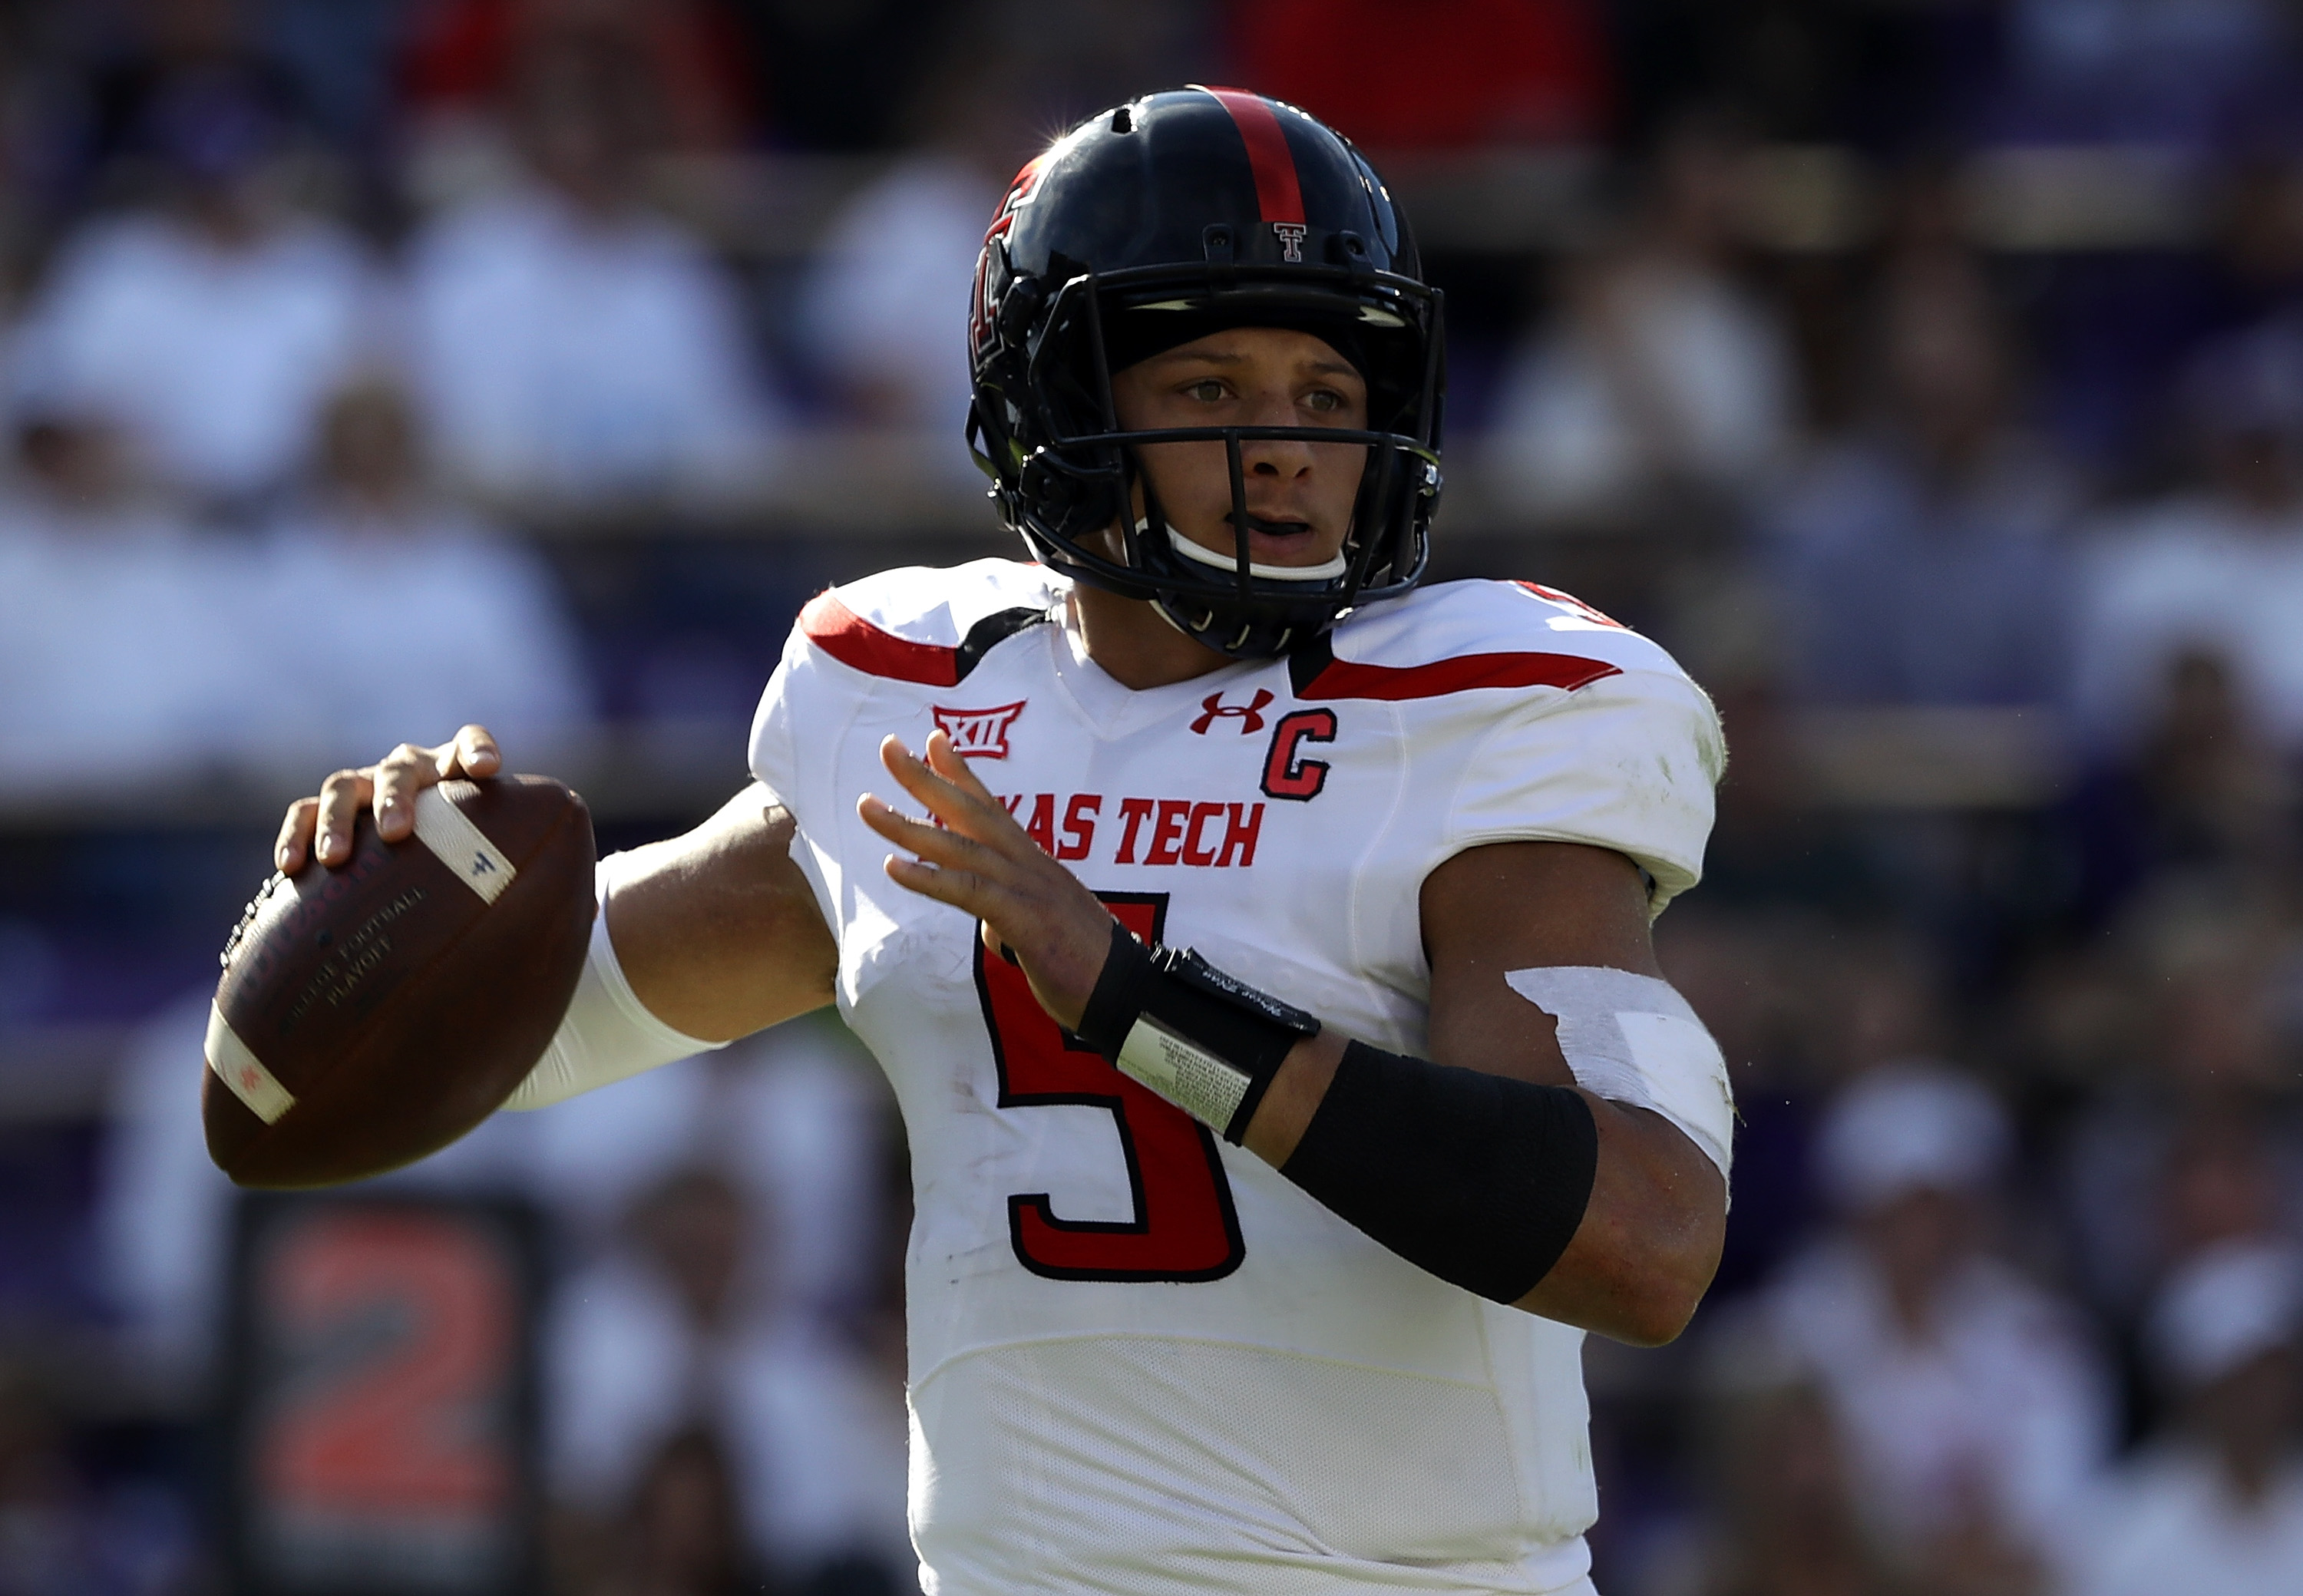 Chiefs officially sign Patrick Mahomes